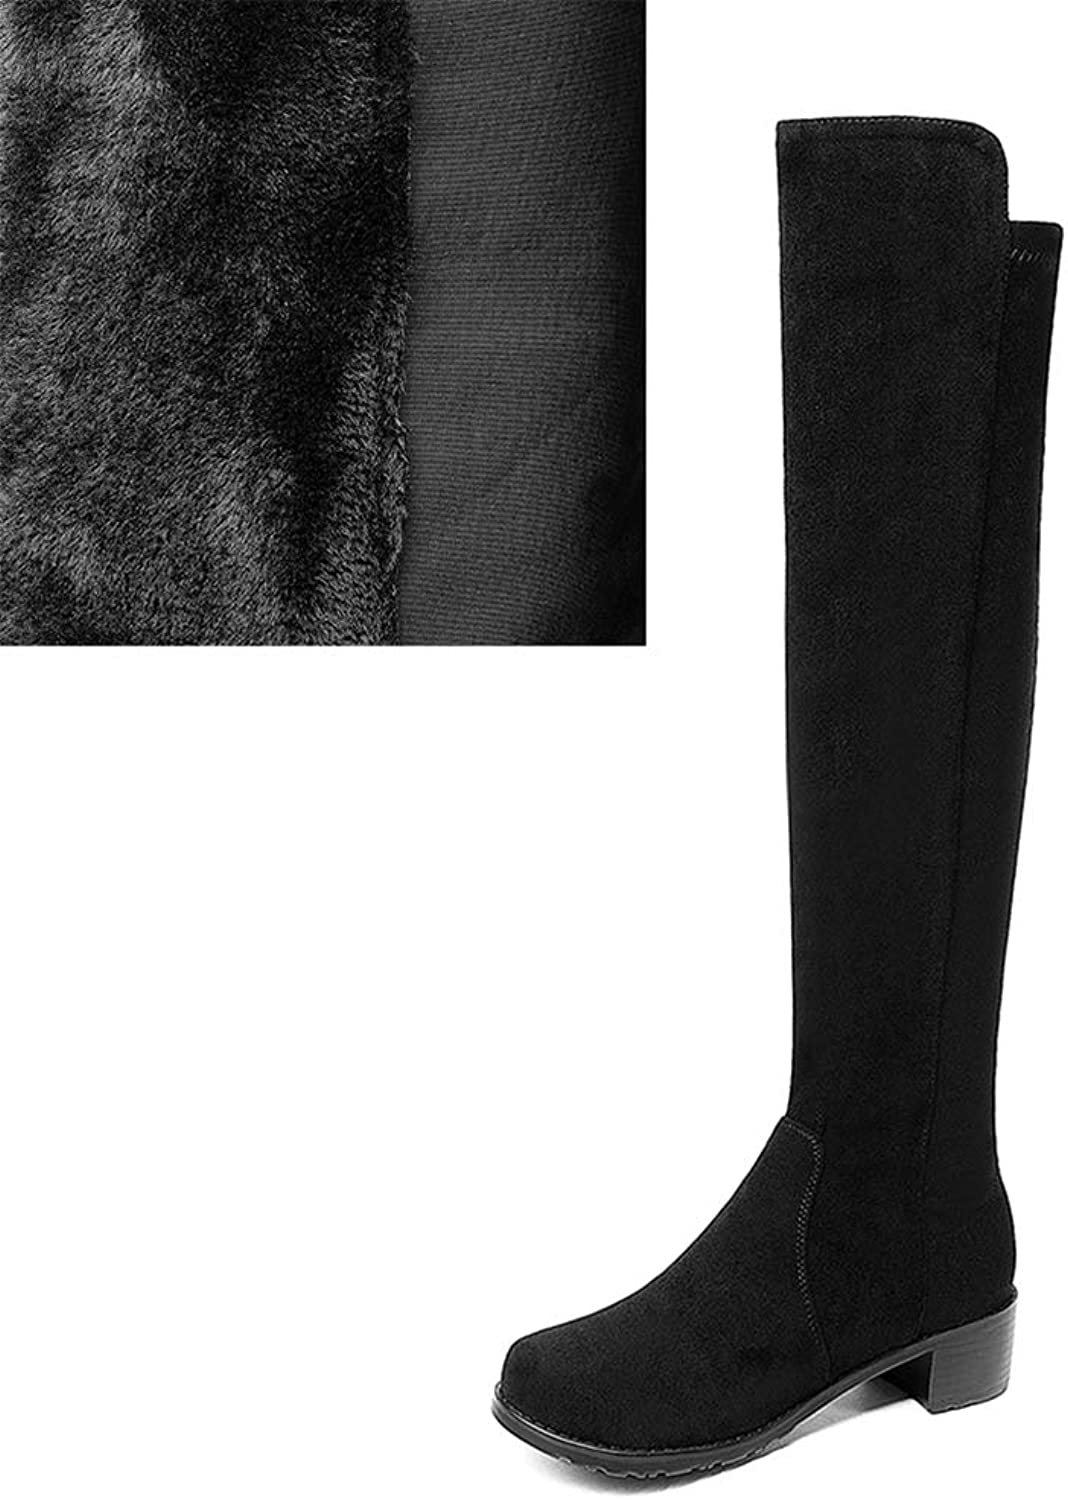 Trendy Knee-High Boots Women's shoes Large Sizes 34-43 Leisure Female Riding Boots Woman